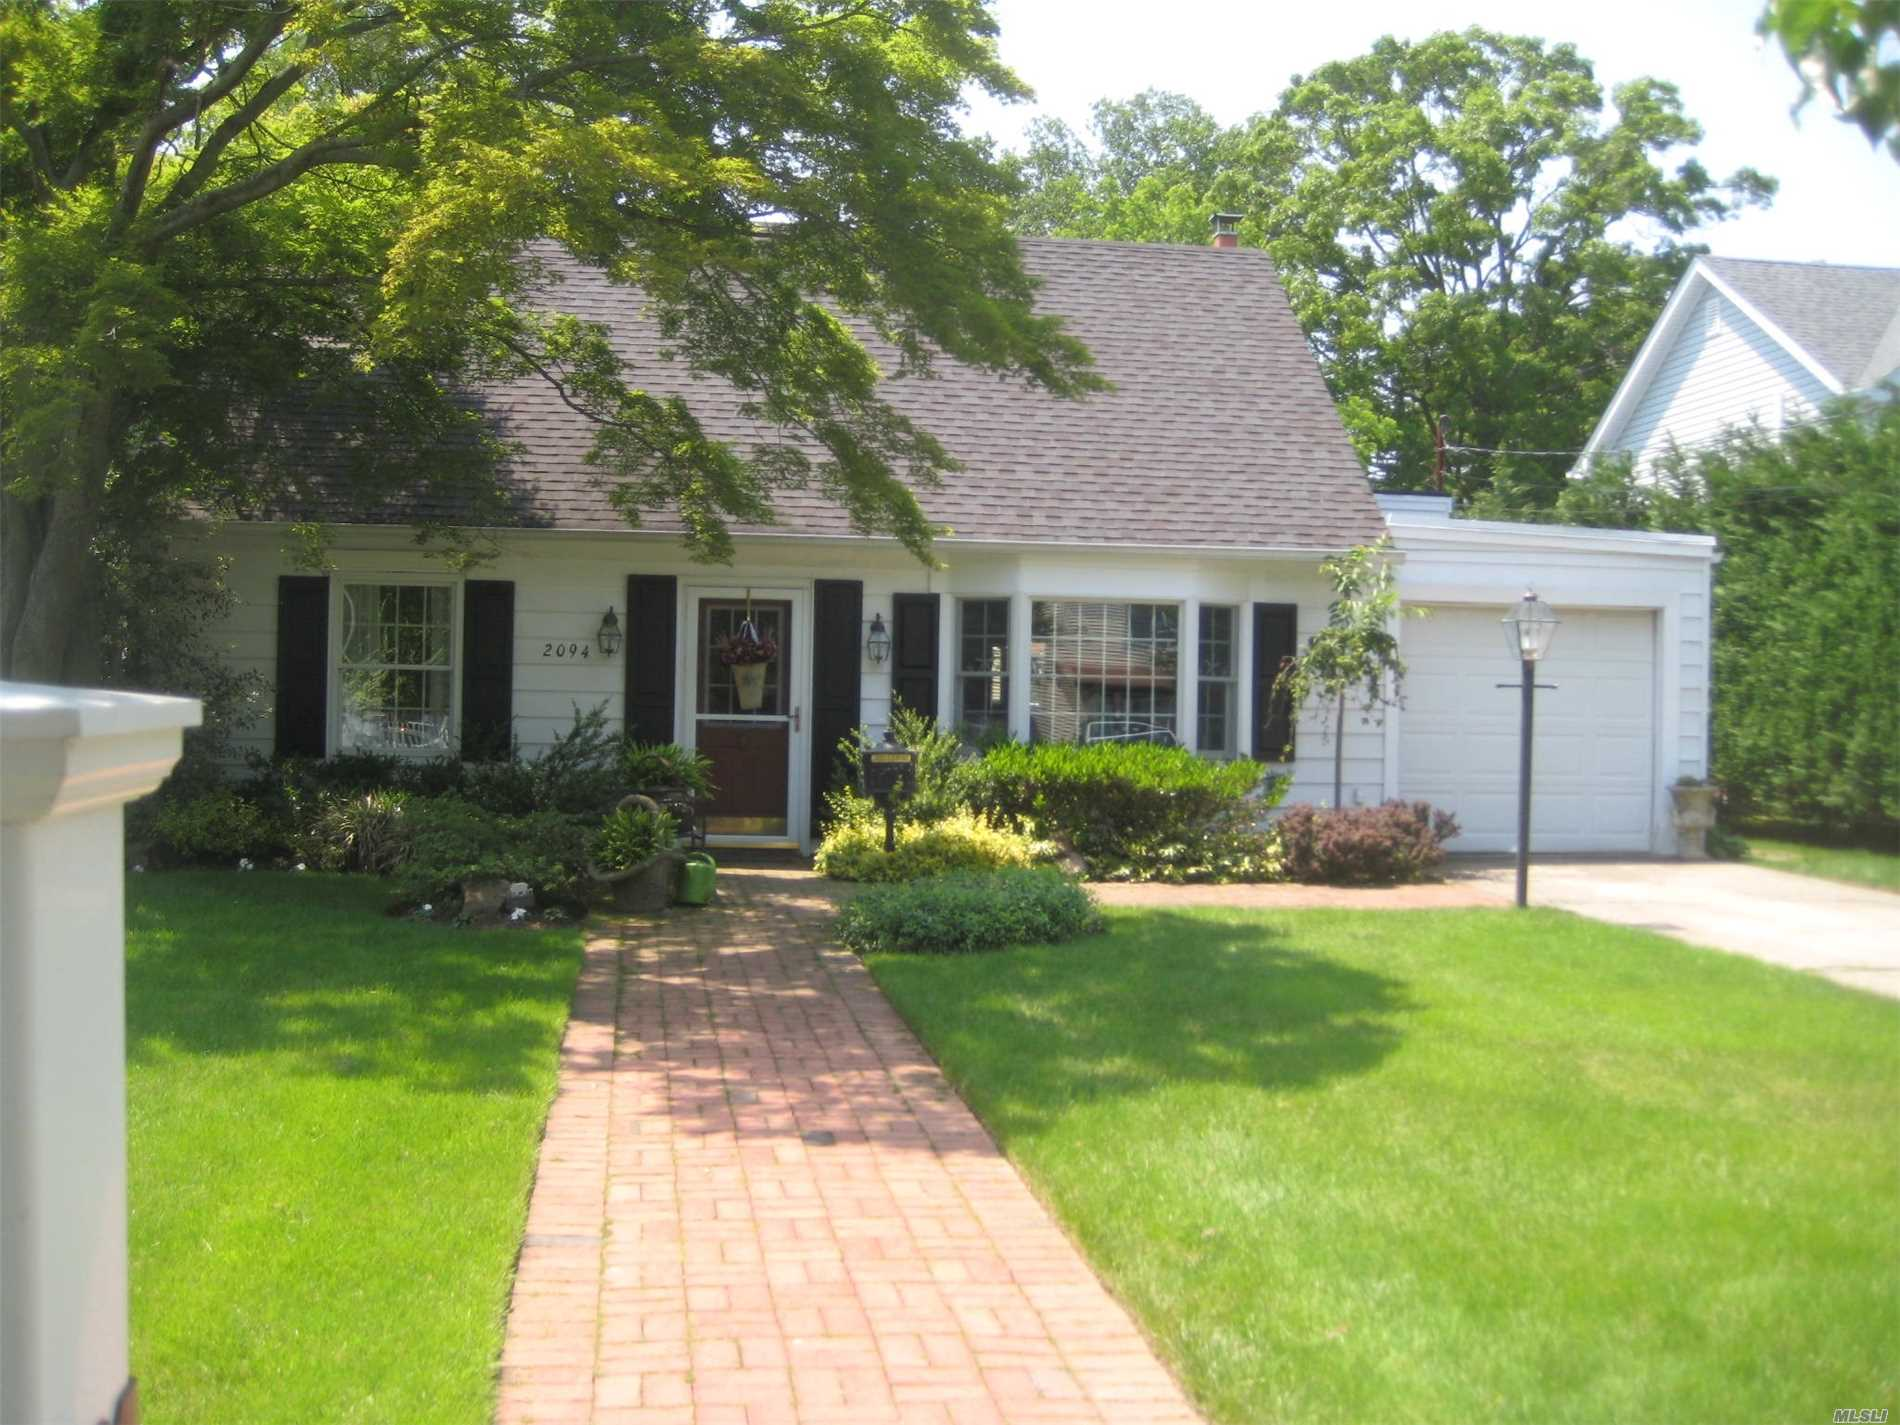 Beautiful Property On Cul De Sac On Oversized Lot. New Kitchens And Baths, Newburn & Tank, Huge Den With Working Fireplace, Shed Is A Gift, Closeto Rr & Shopping